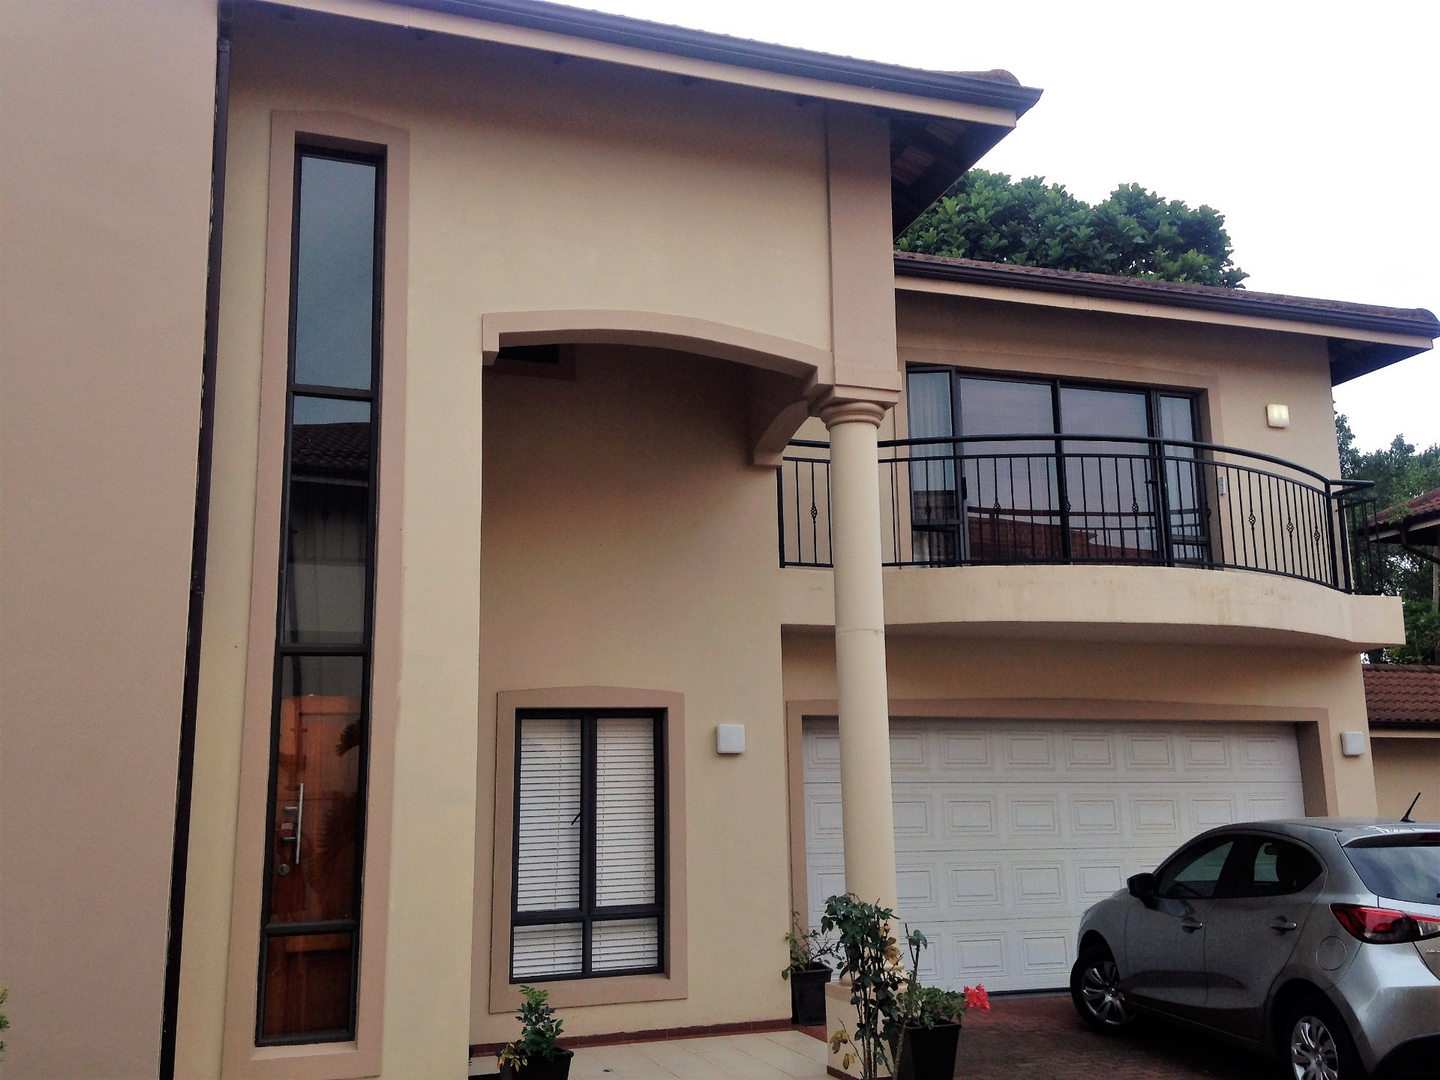 3 BedroomTownhouse For Sale In Mount Edgecombe